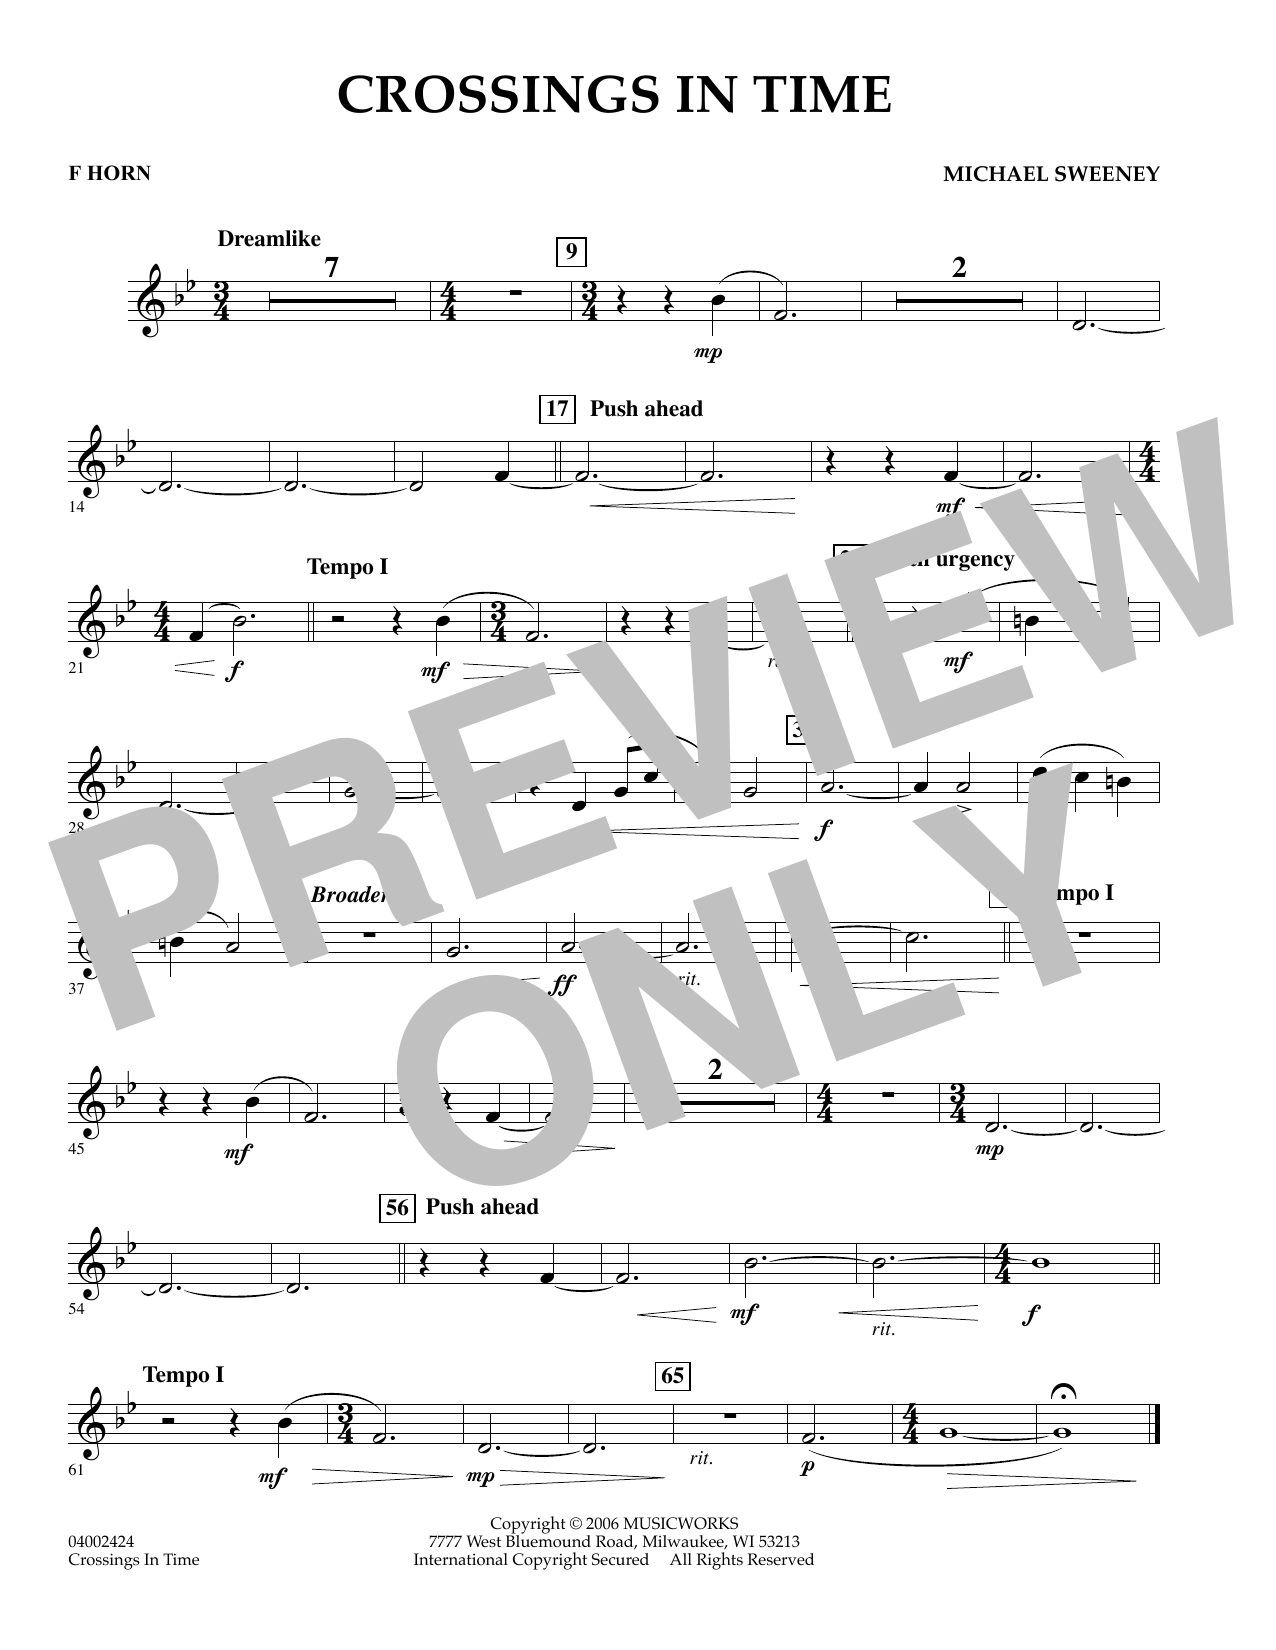 Michael Sweeney Crossings In Time - F Horn sheet music preview music notes and score for Concert Band including 1 page(s)